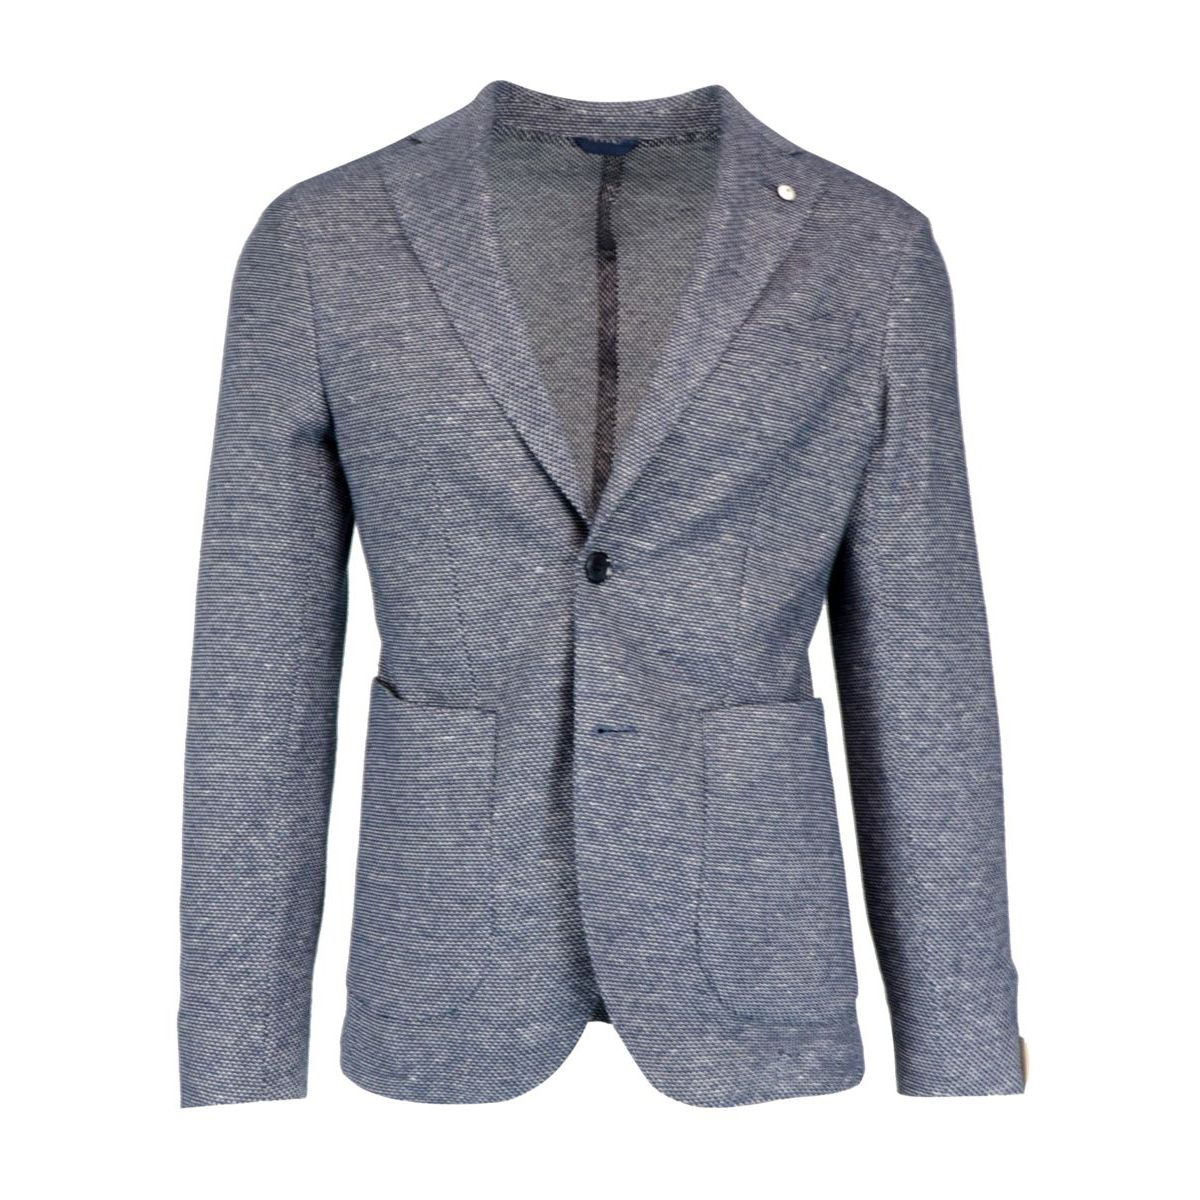 Slim two-button jacket in textured cotton and linen Denim L.B.M. 1911